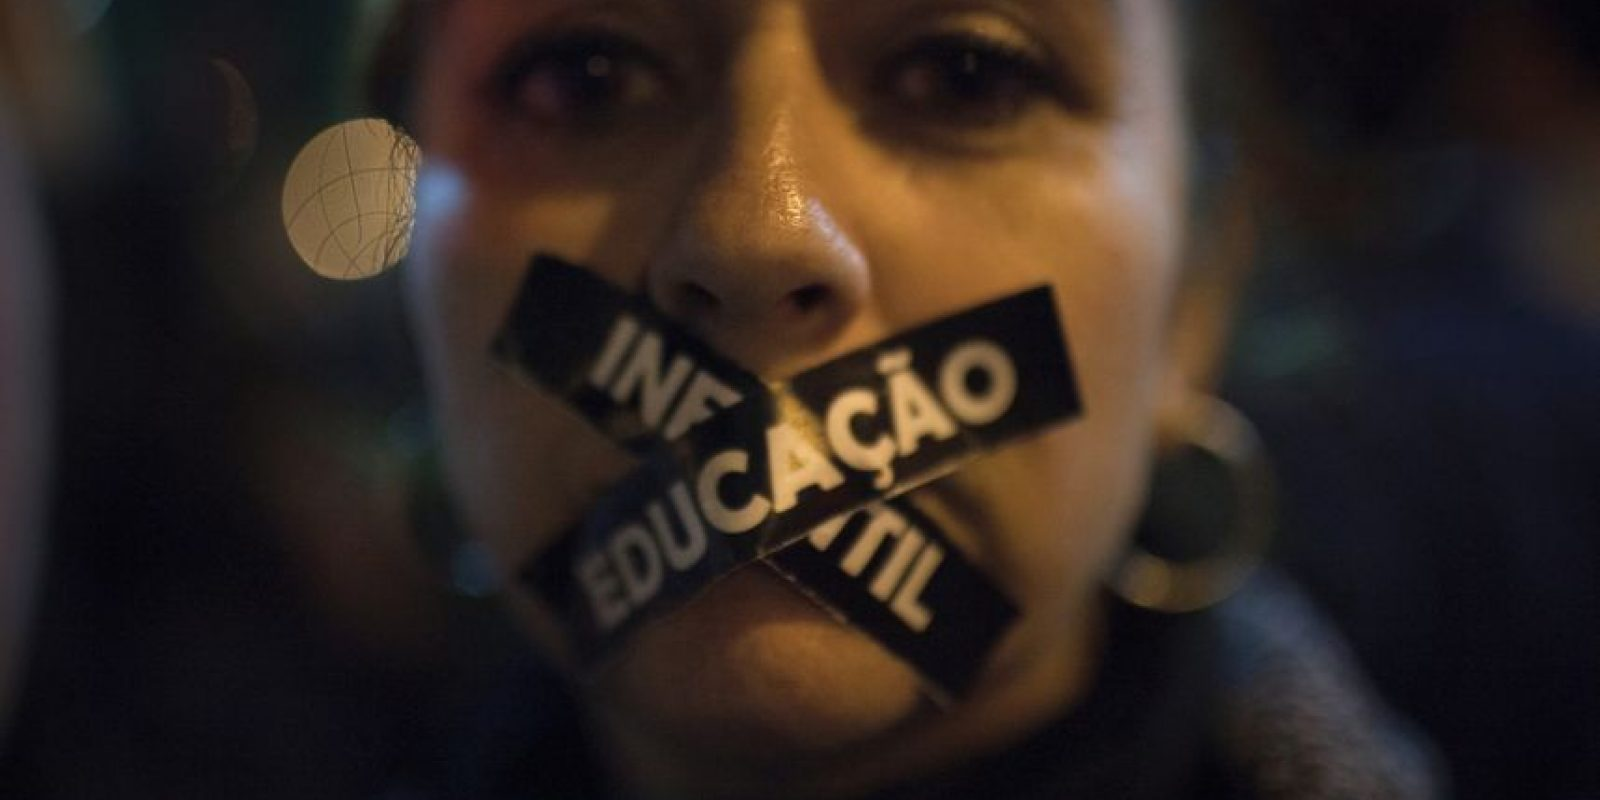 Foto: Getty Images. Información: Esglobal.com